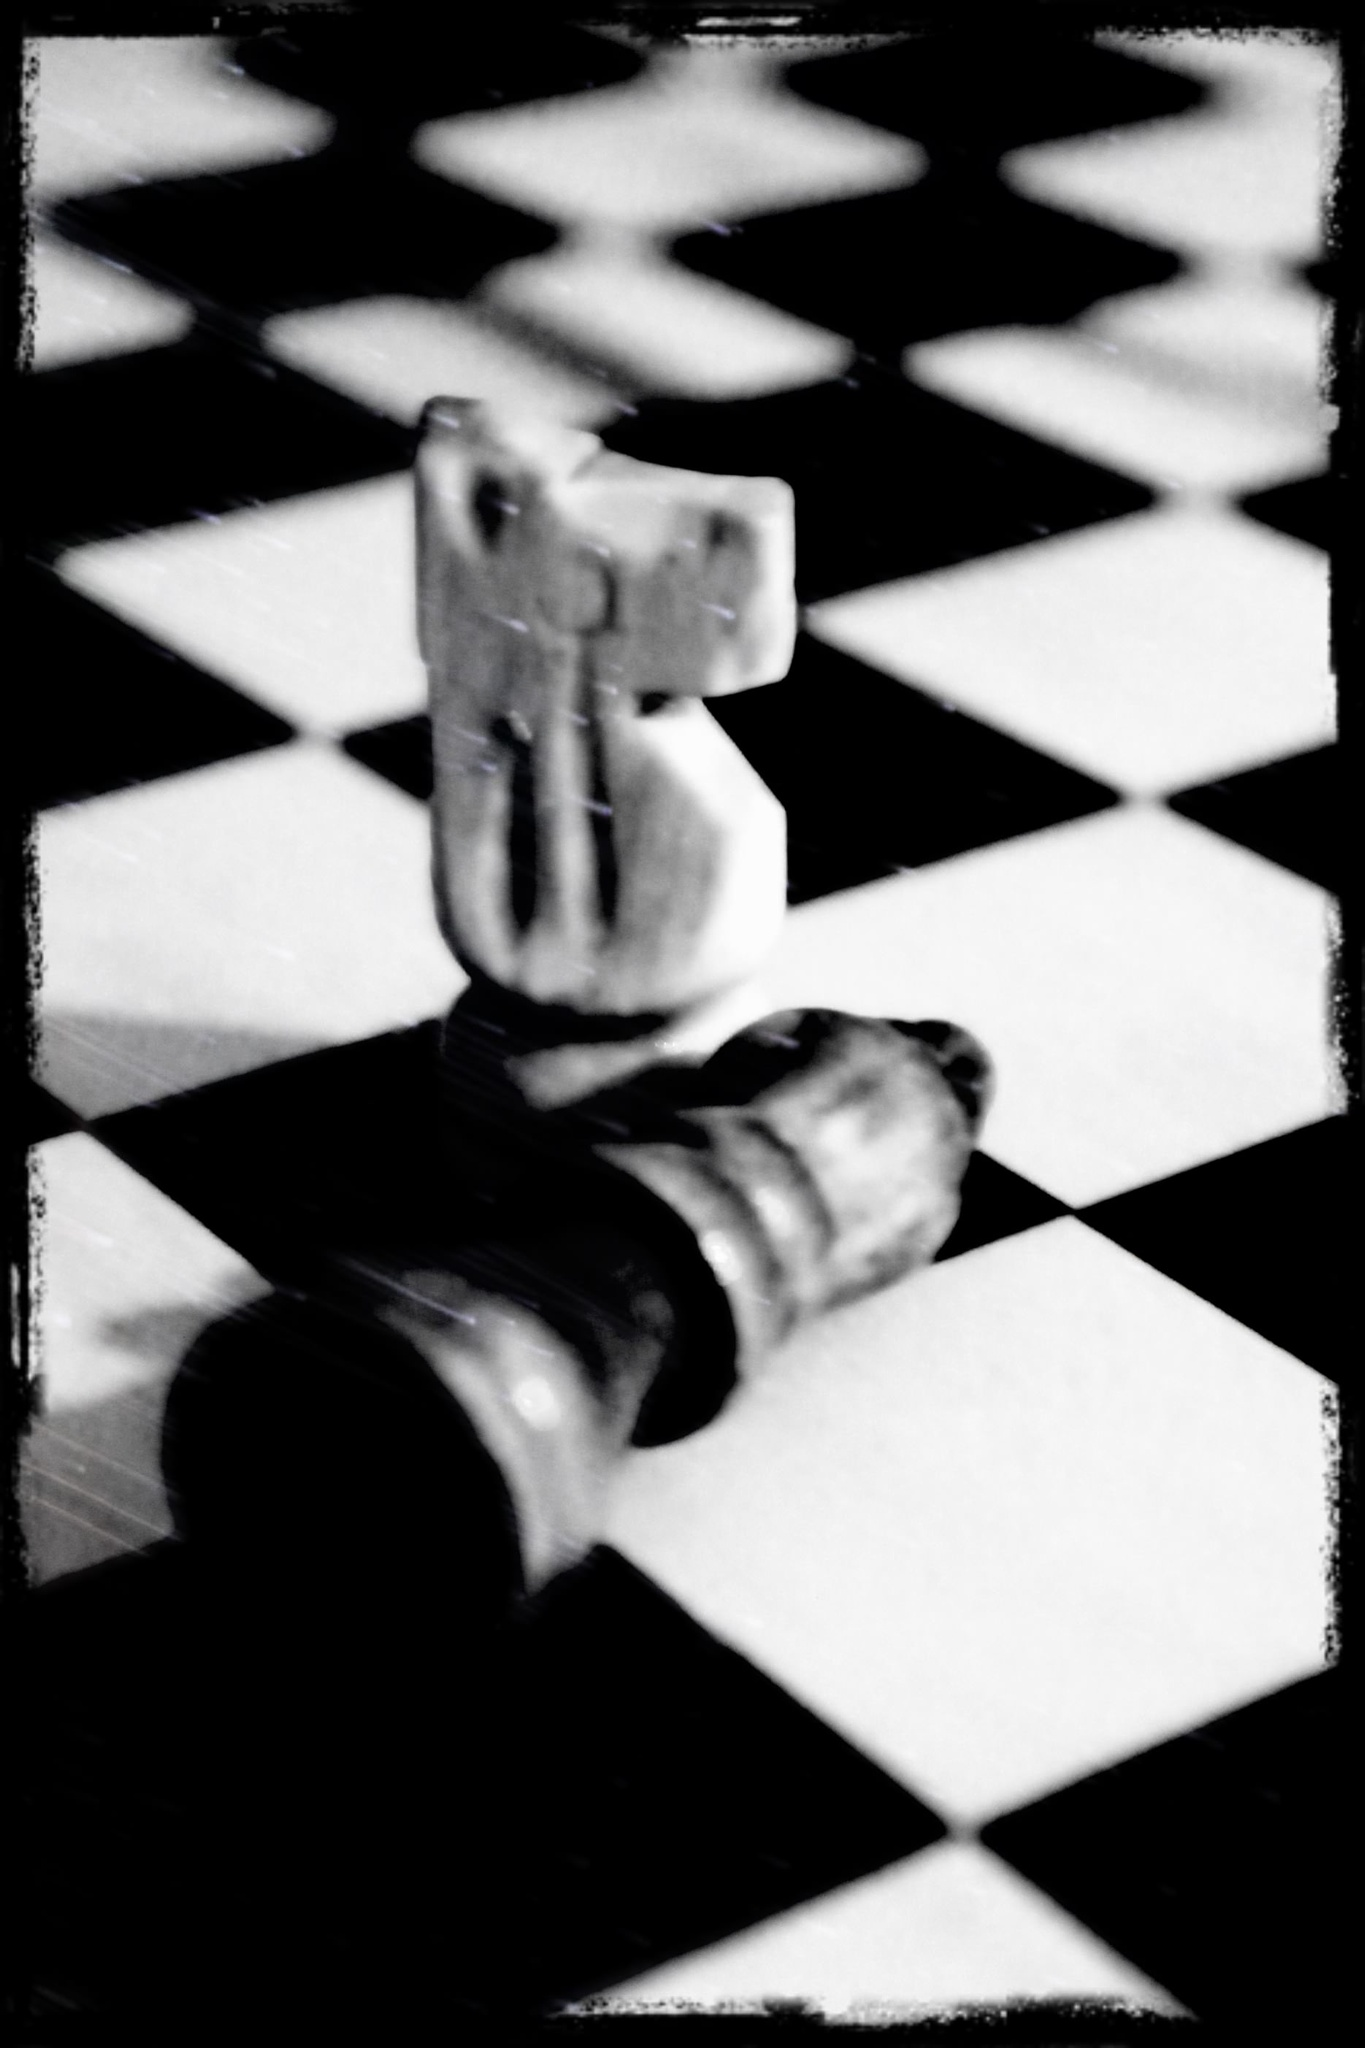 Checkmate by Michael Hines